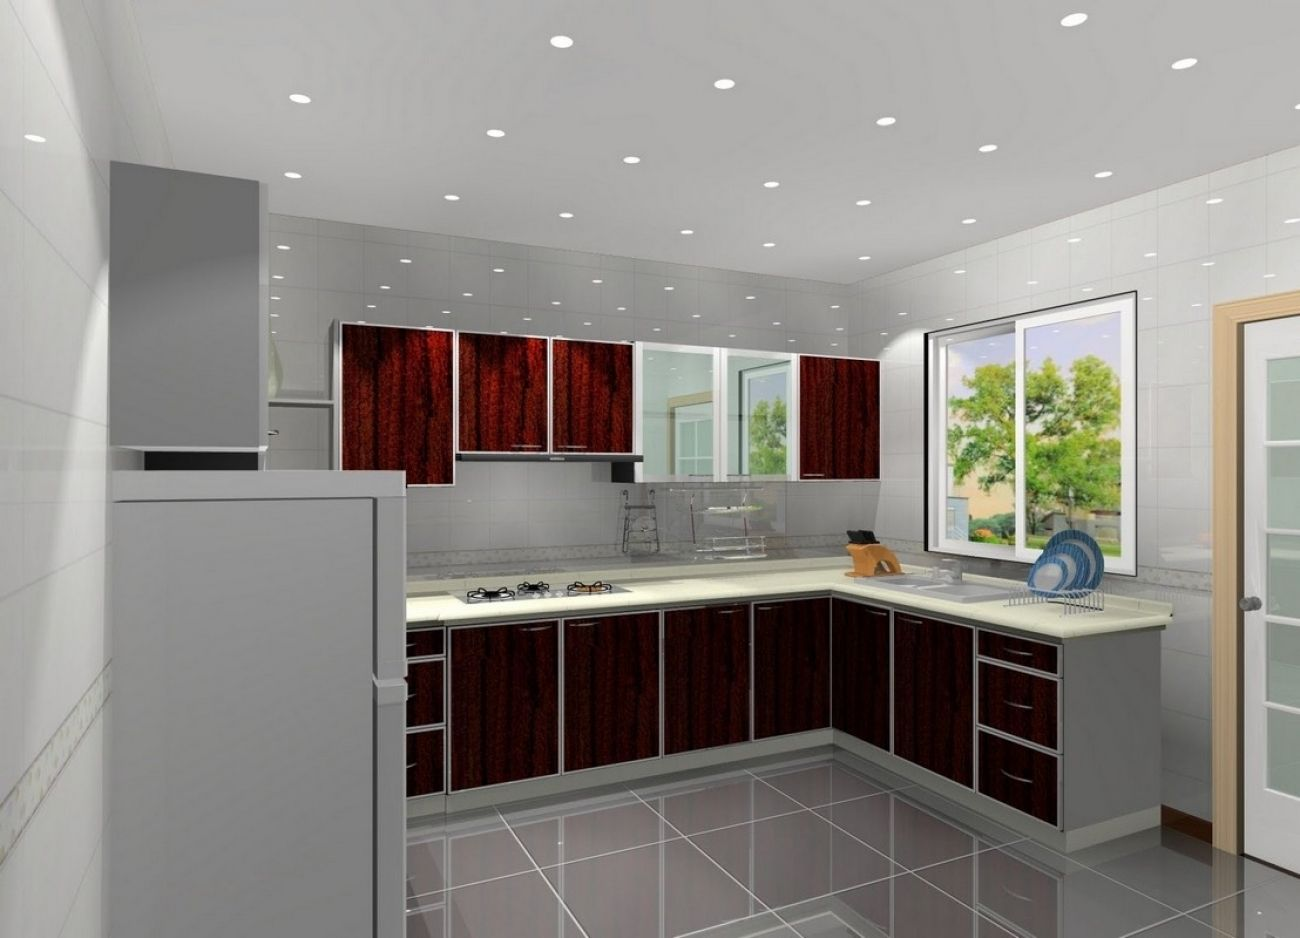 L Shape Kitchen Decoration Using Light Grey Kitchen Wall Paint Inside Light Gray Kitchen Kitchen Design Software Interior Design Kitchen Simple Kitchen Design